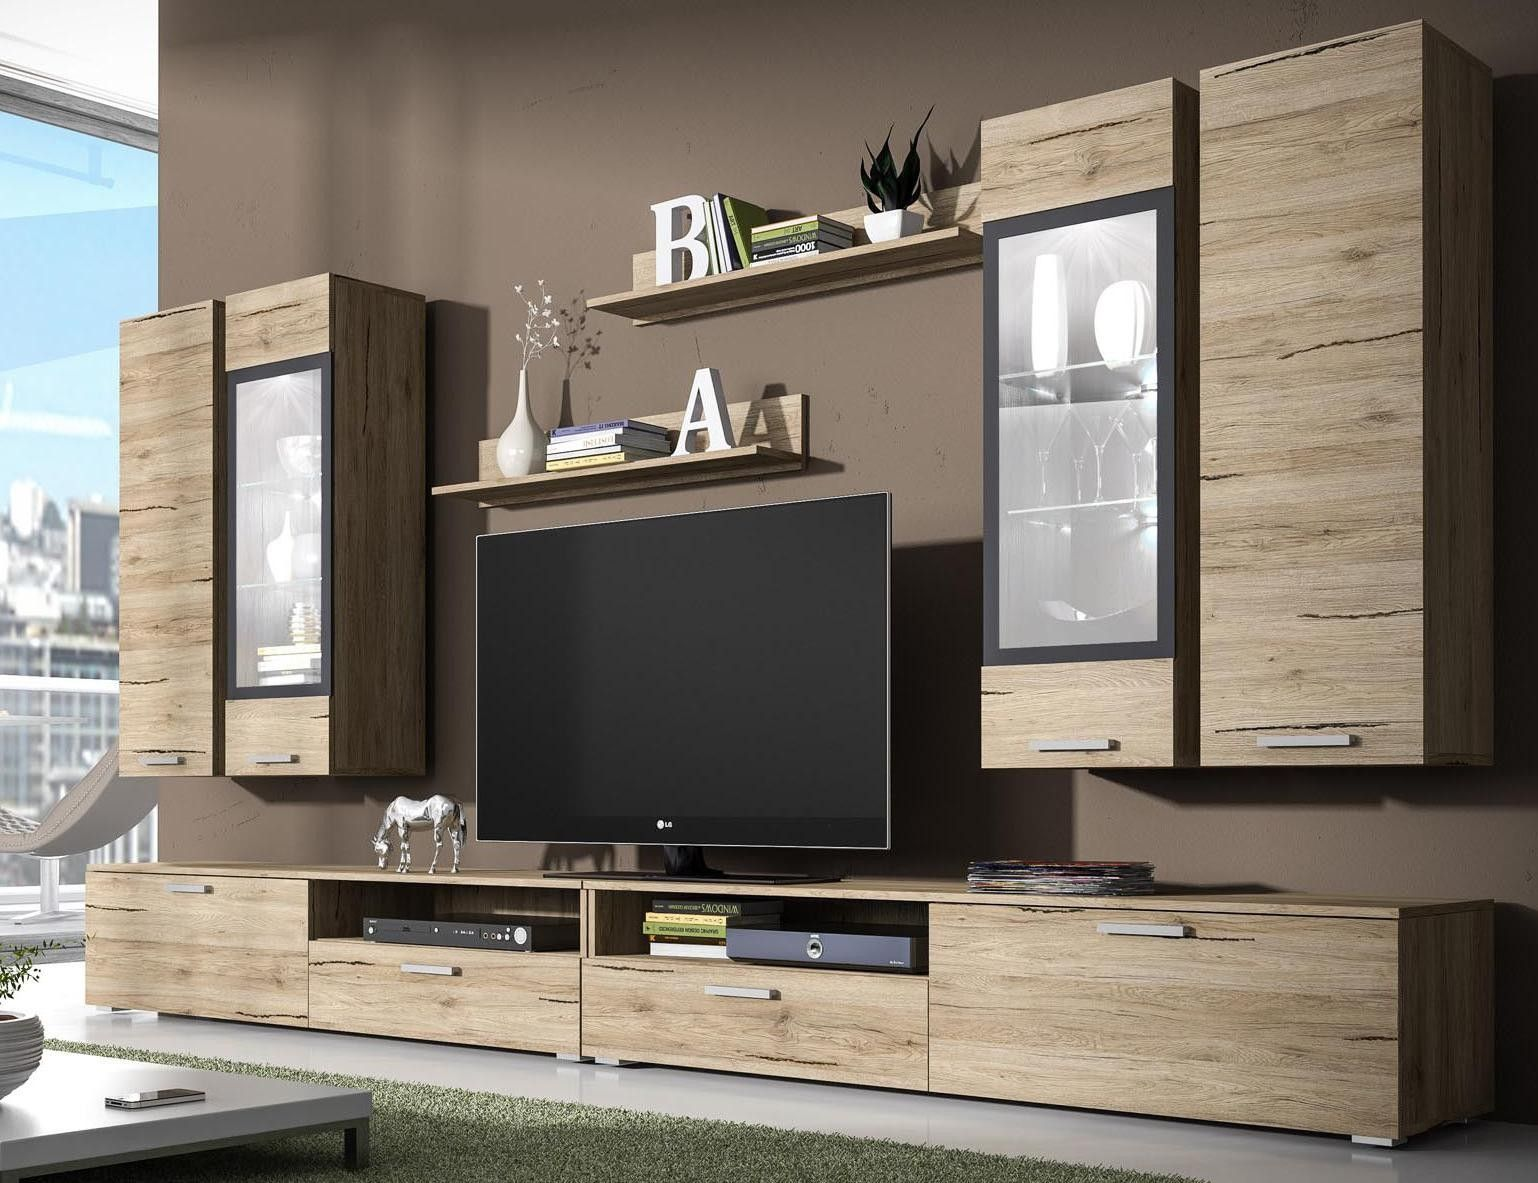 Meuble Tv Mural En Bois > Ensemble Meuble Tv Mural Nova Meuble Tv Design Pas Cher [mjhdah]http://www.emporiodellacasa.com/media/catalog/product/cache/7/image/9df78eab33525d08d6e5fb8d27136e95/n/o/norman_norm01tv517_61.jpg